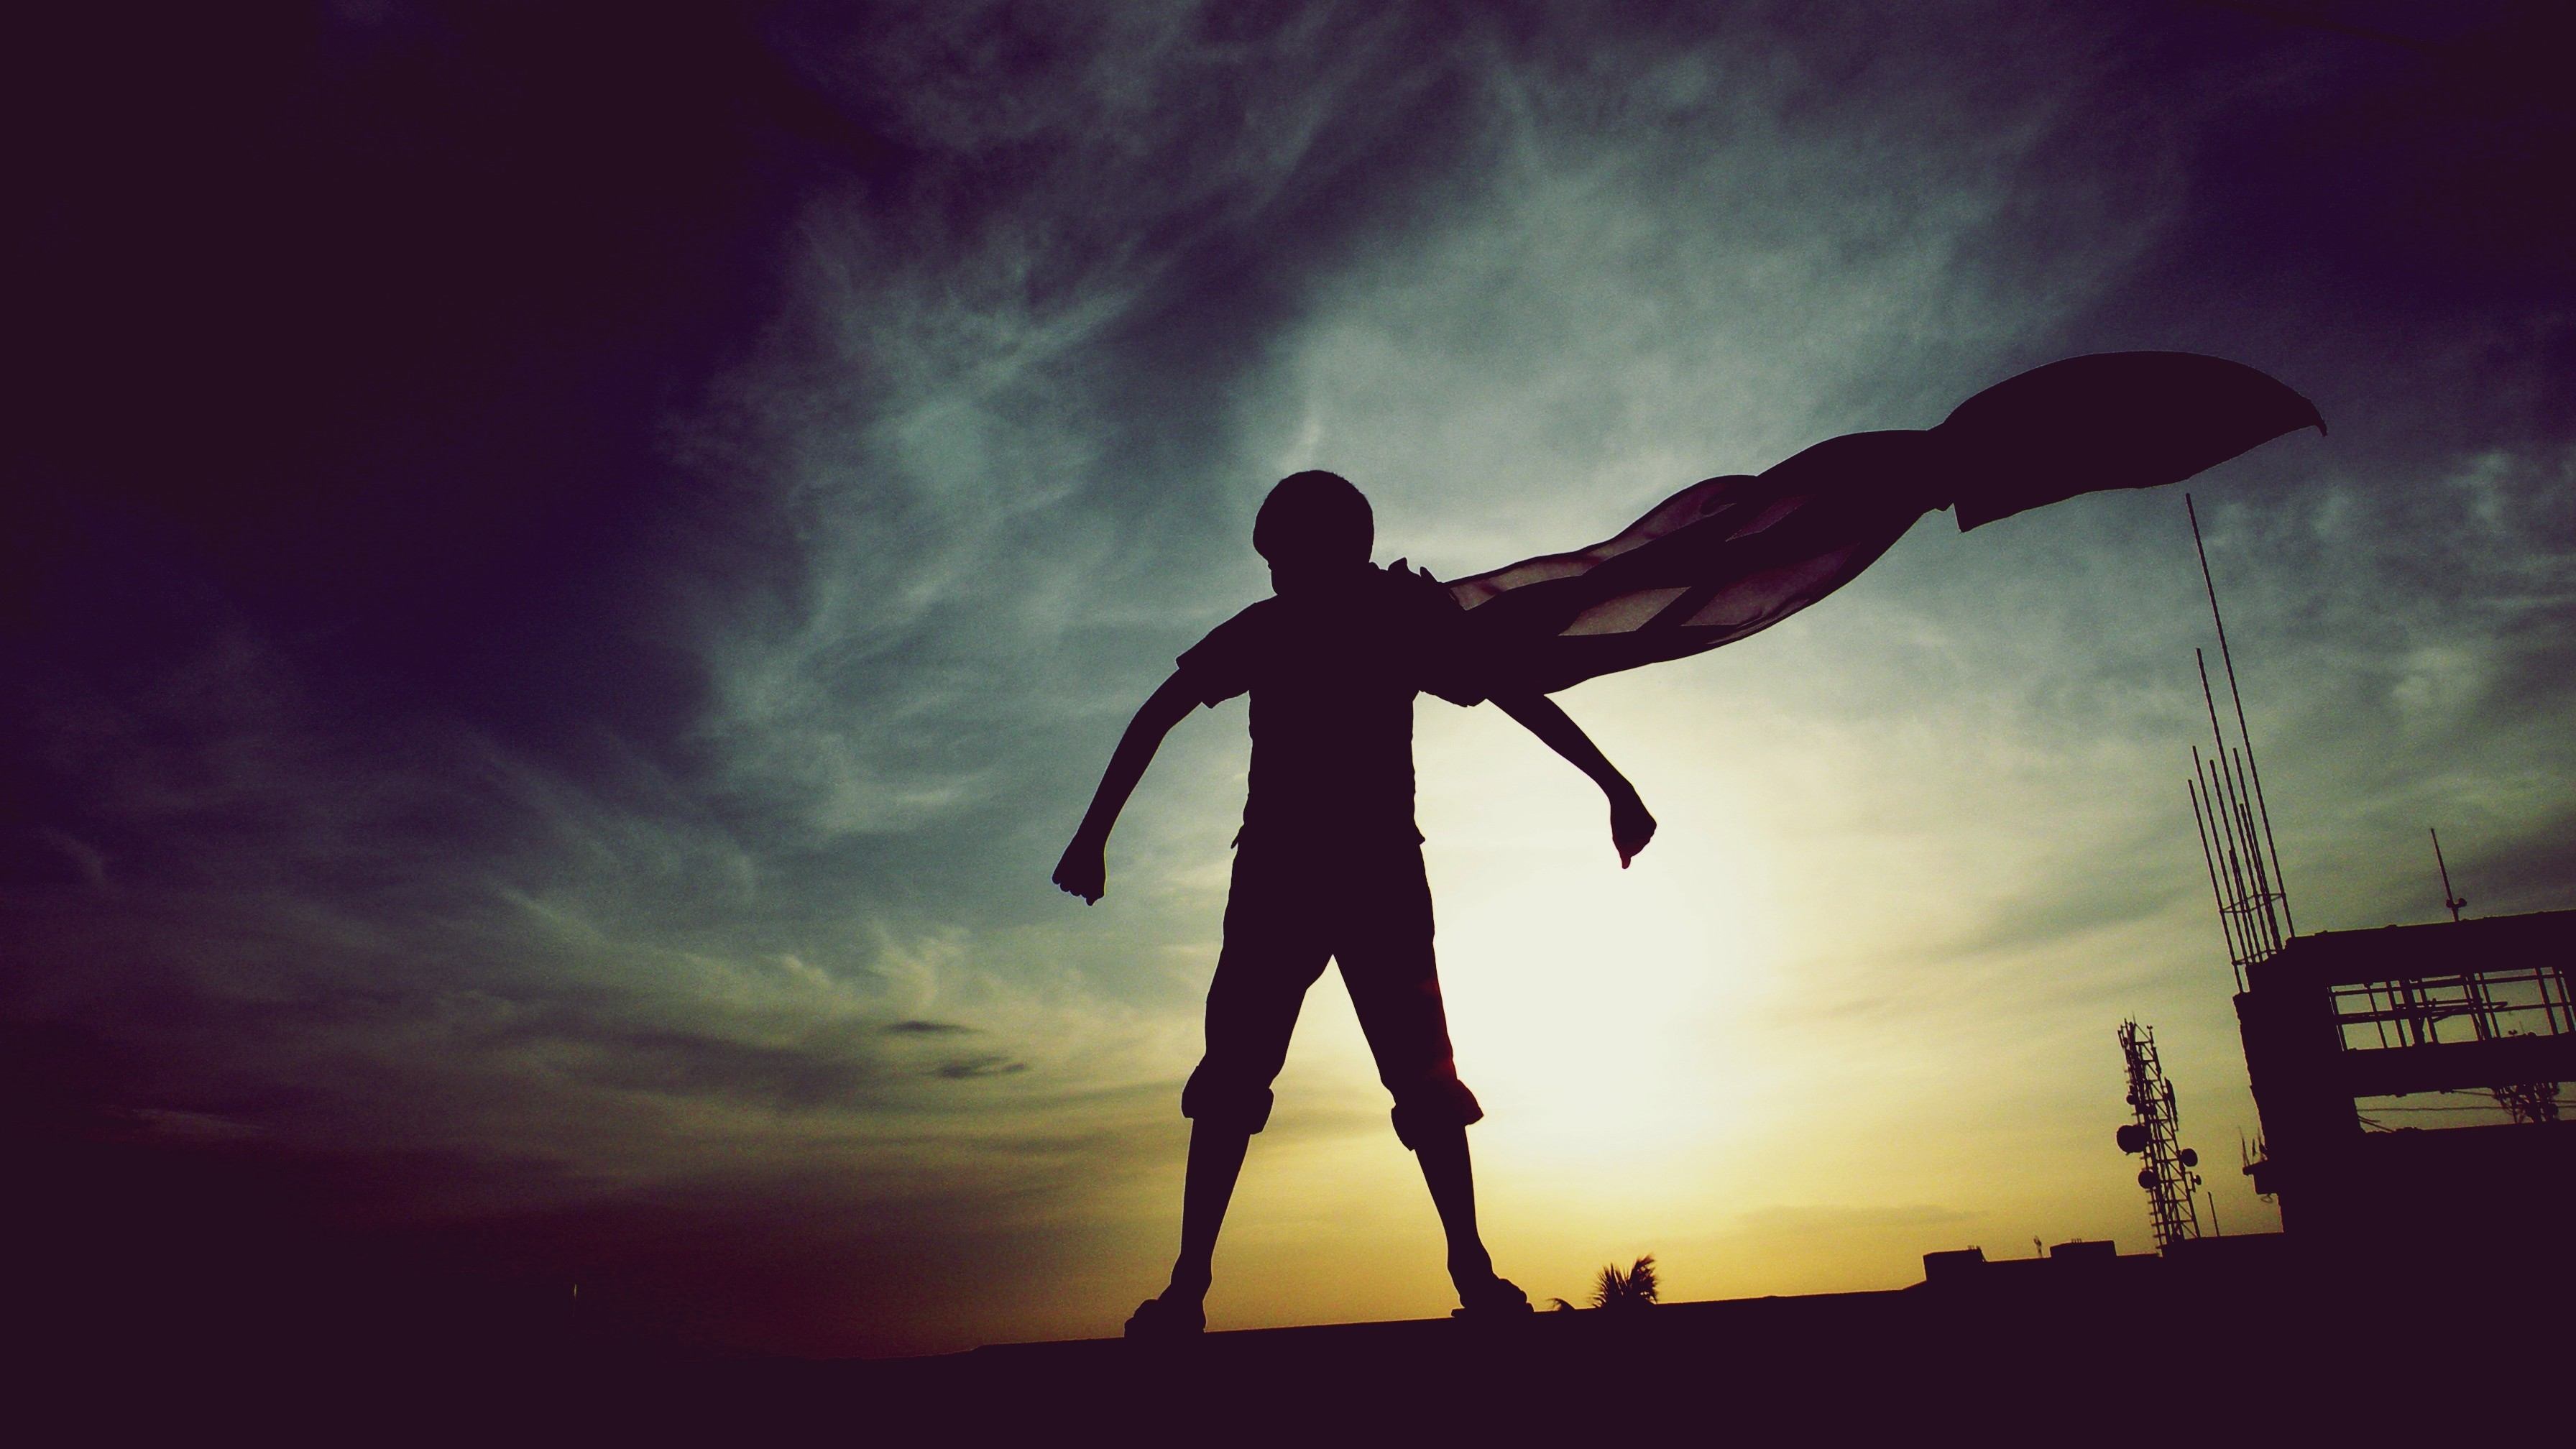 Happy Fall Desktop Wallpaper Silhouette Photography Superman Childhood Dreams 500px